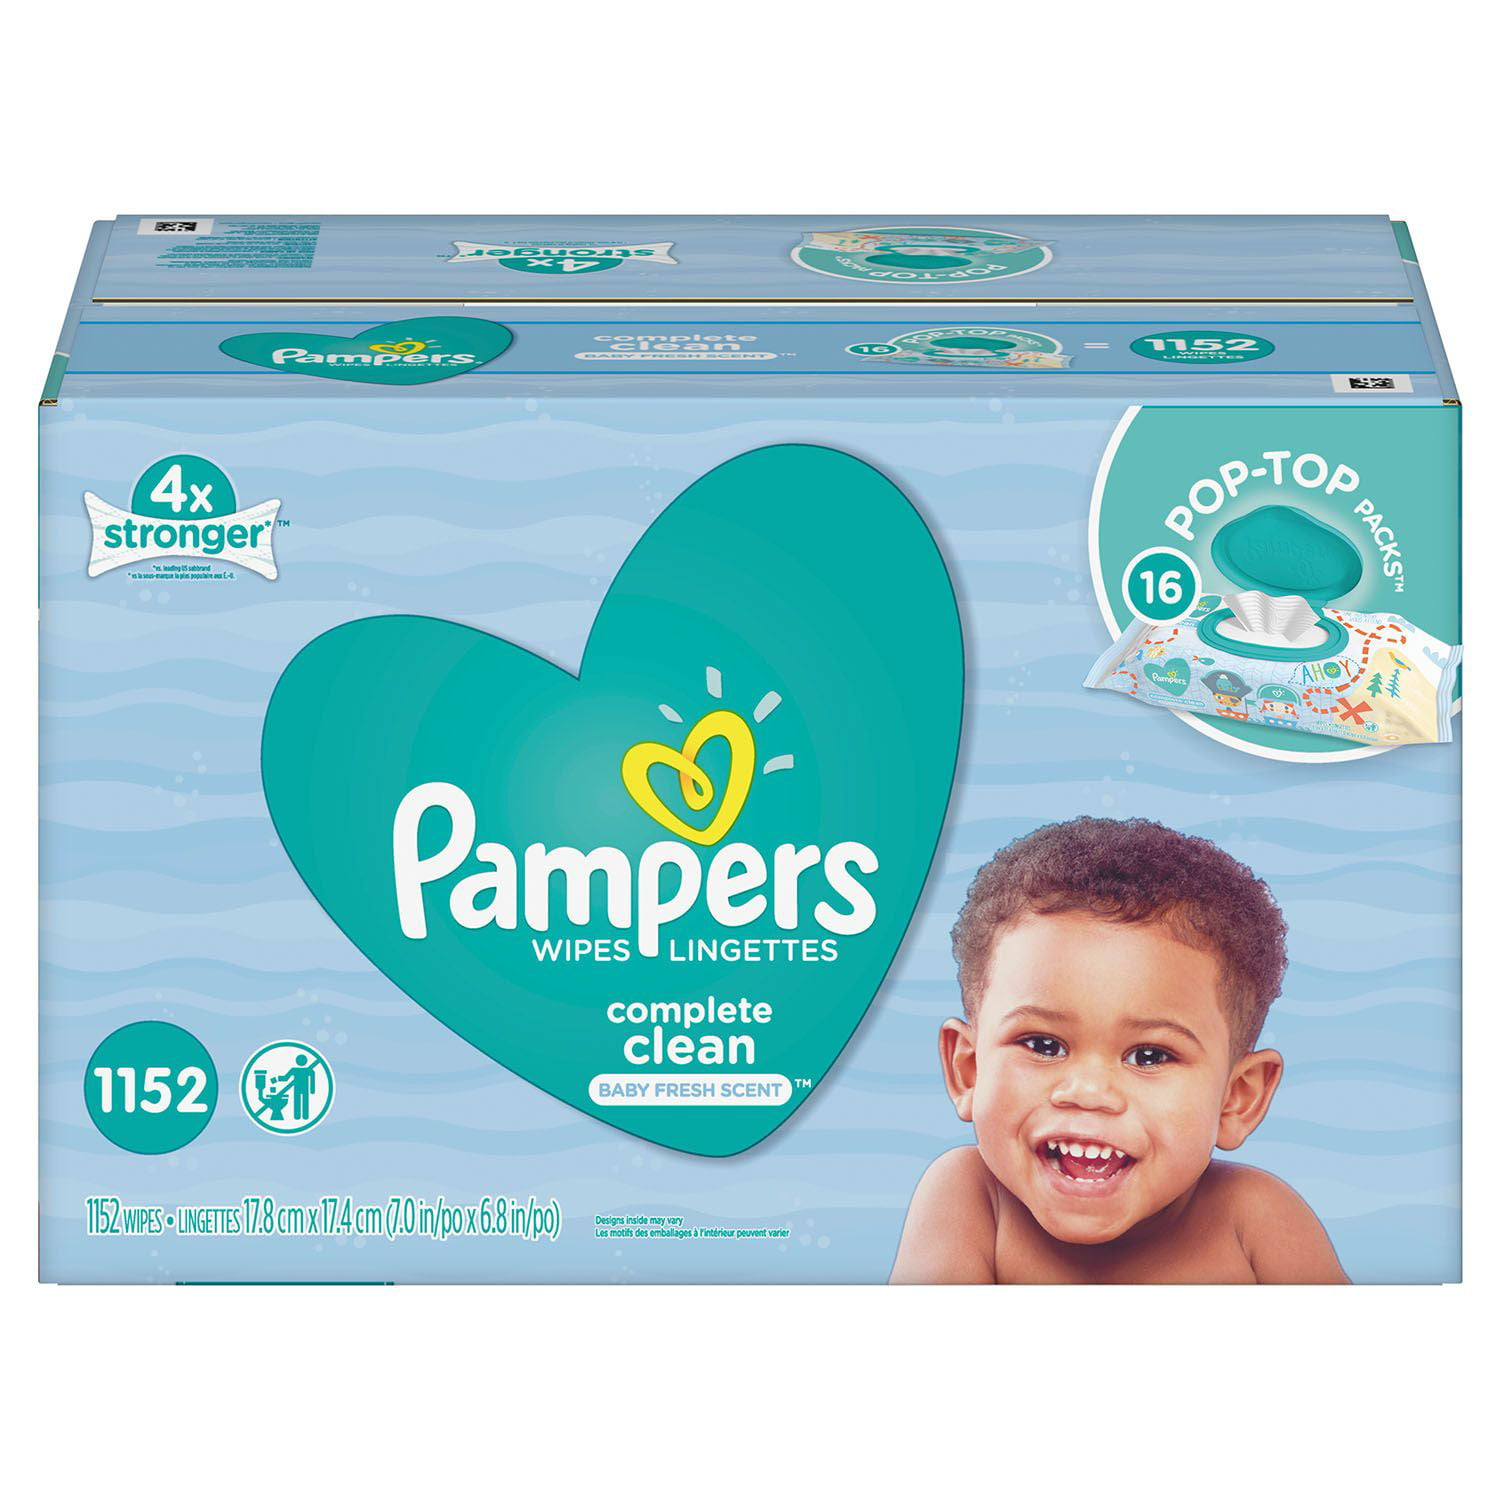 Pampers Baby Wipes, Complete Clean (1152 ct.) by Unbranded